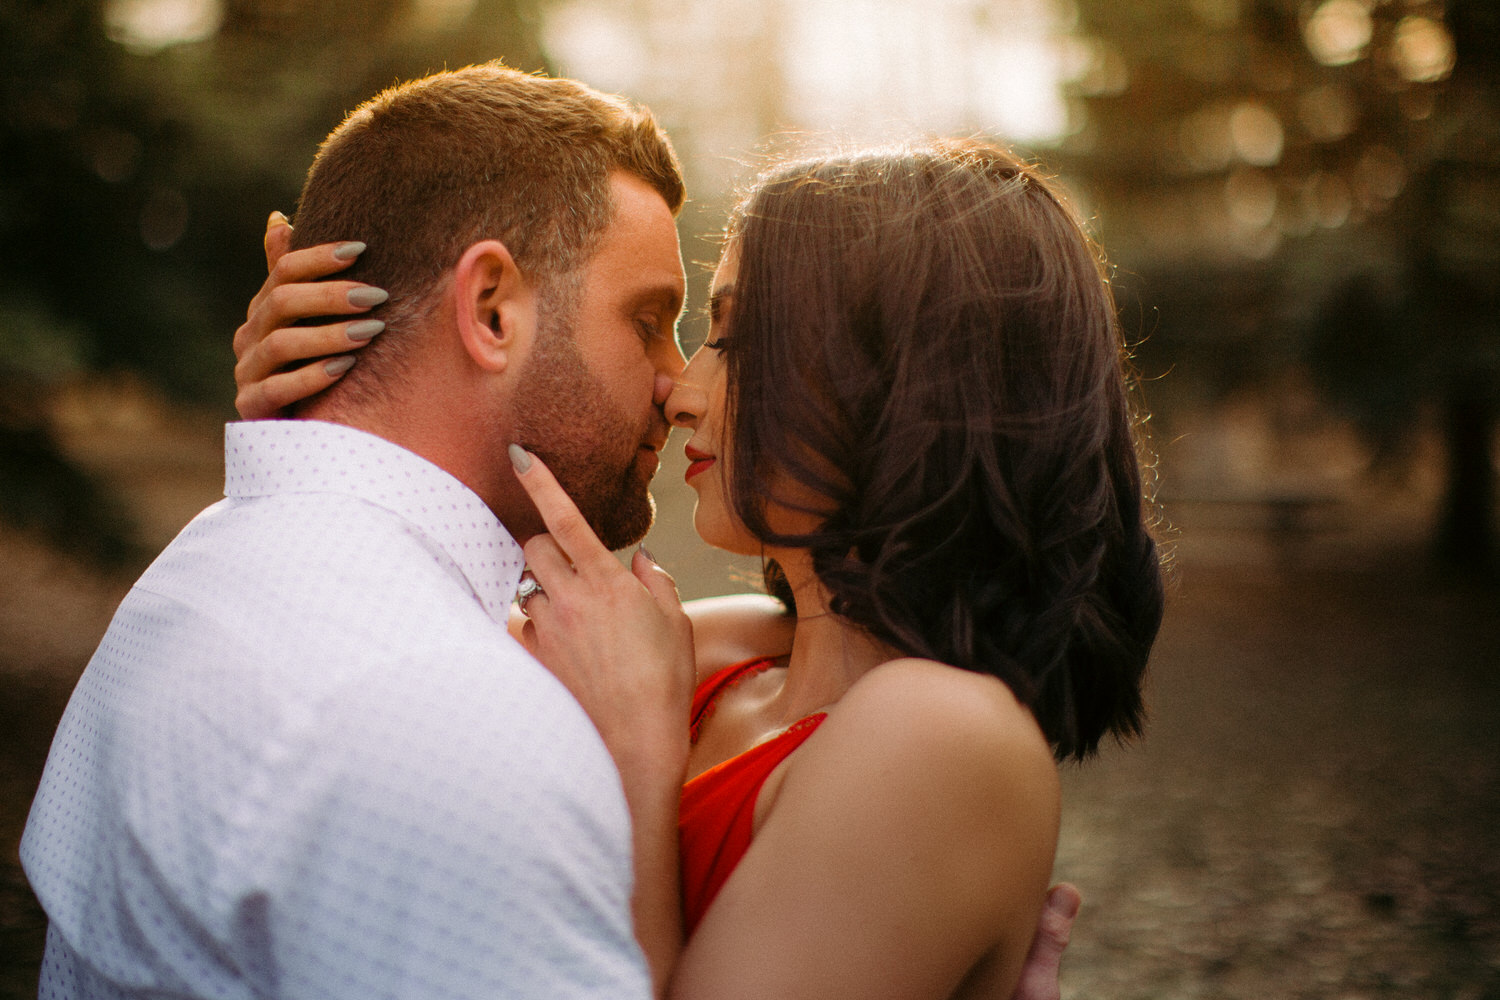 A beautiful evening engagement shoot in a Calgary Park